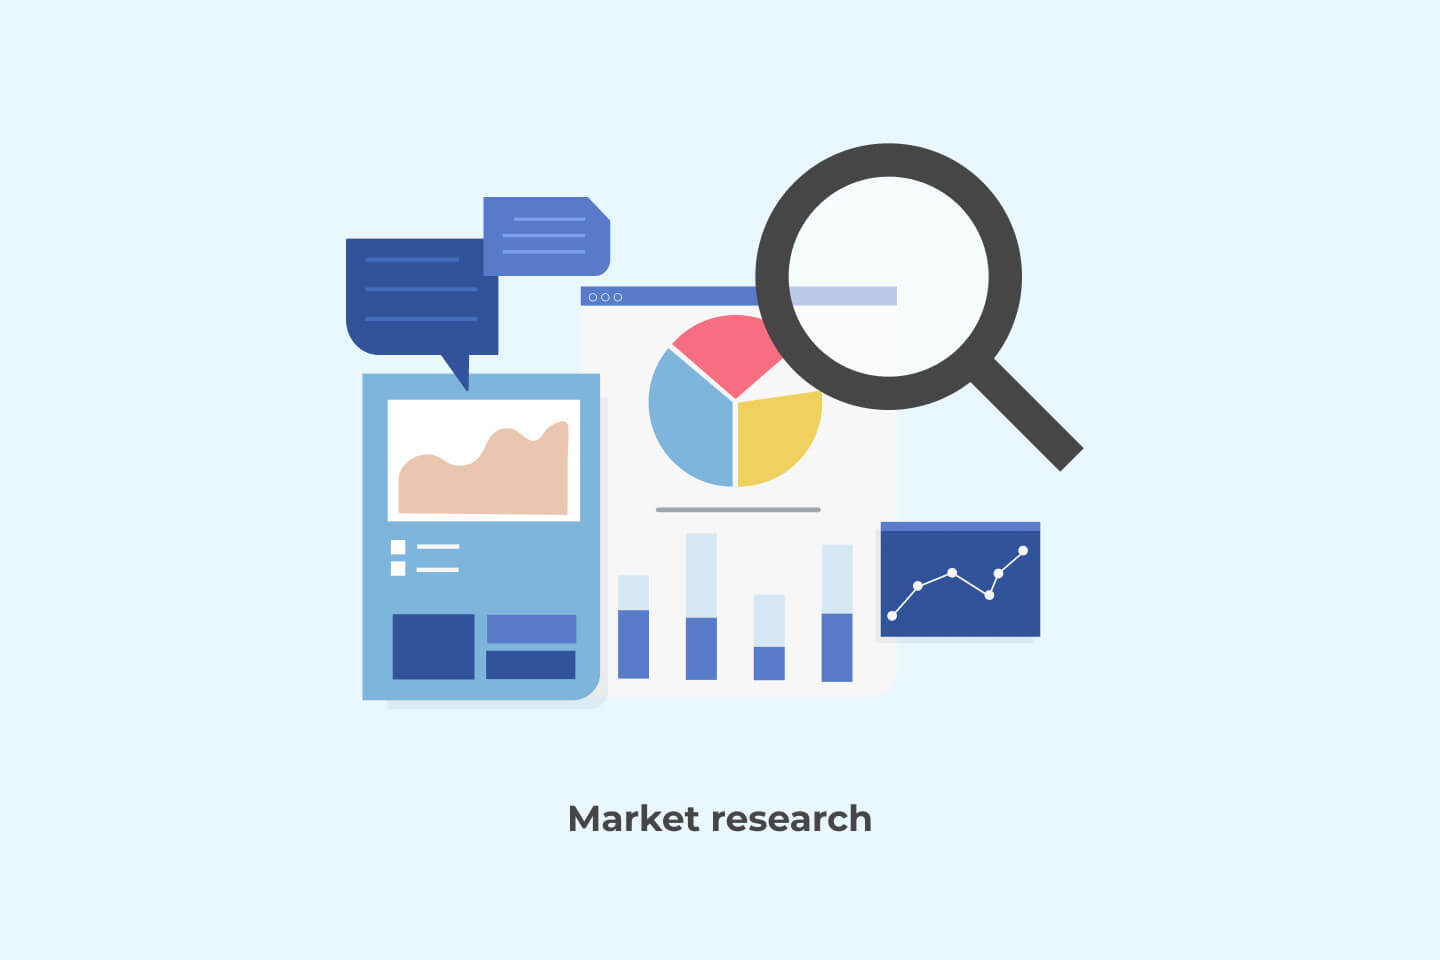 Market research for marketplace app